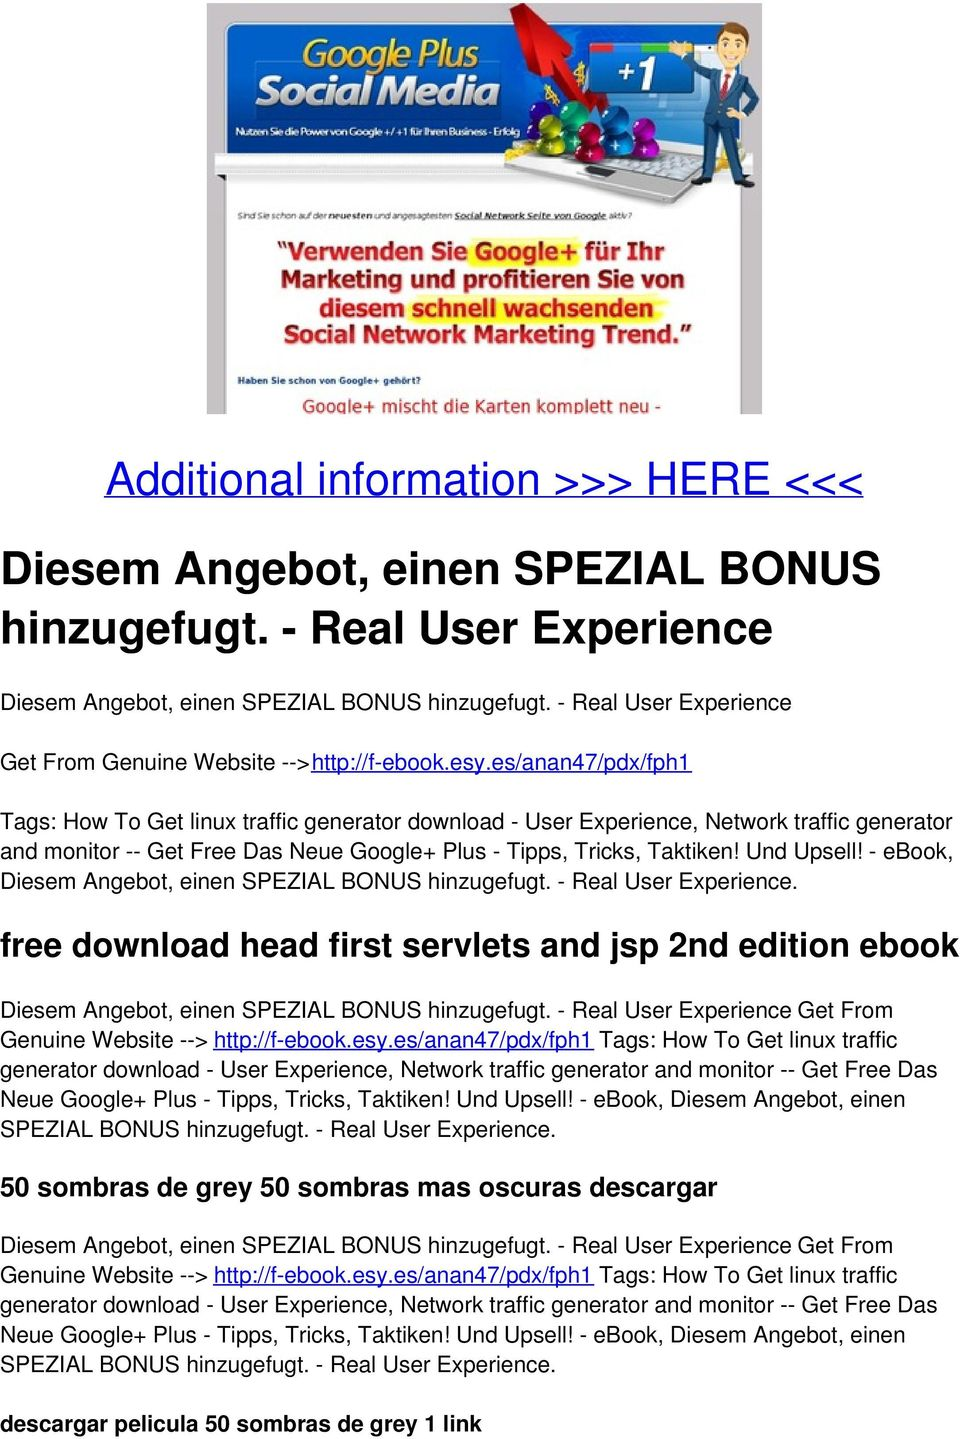 Download ebook gratis 47 formula